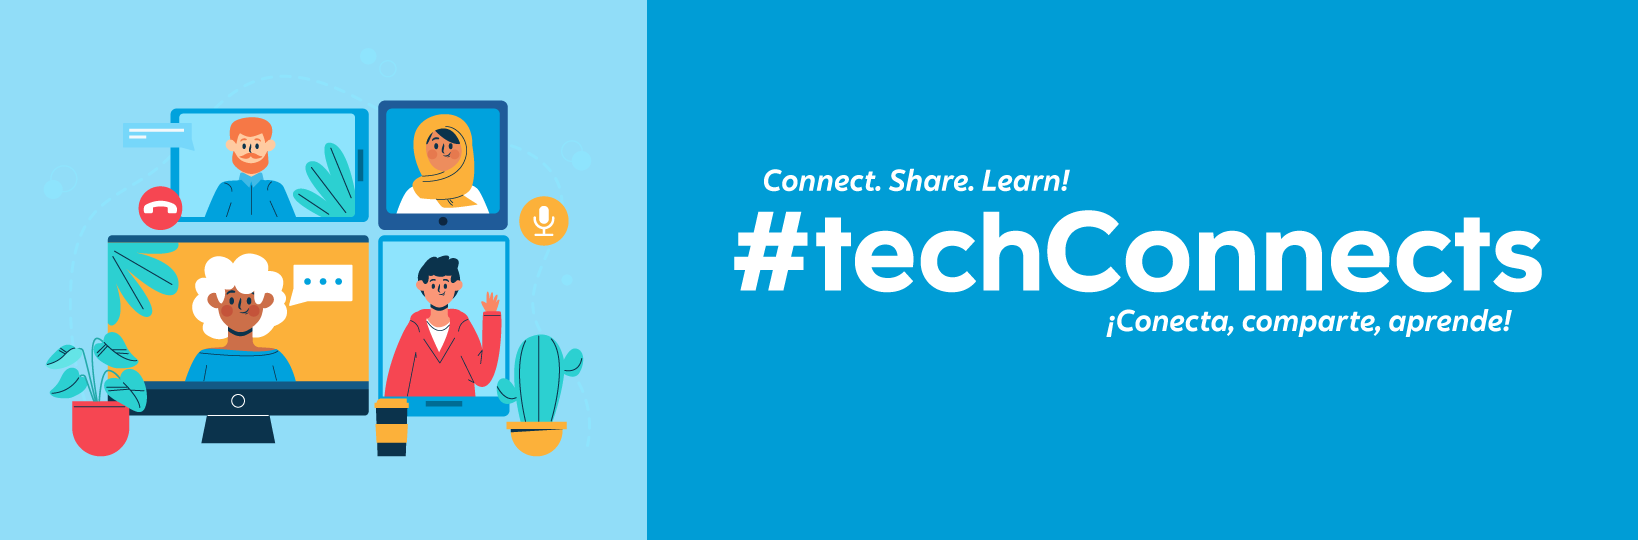 #techConnects banner